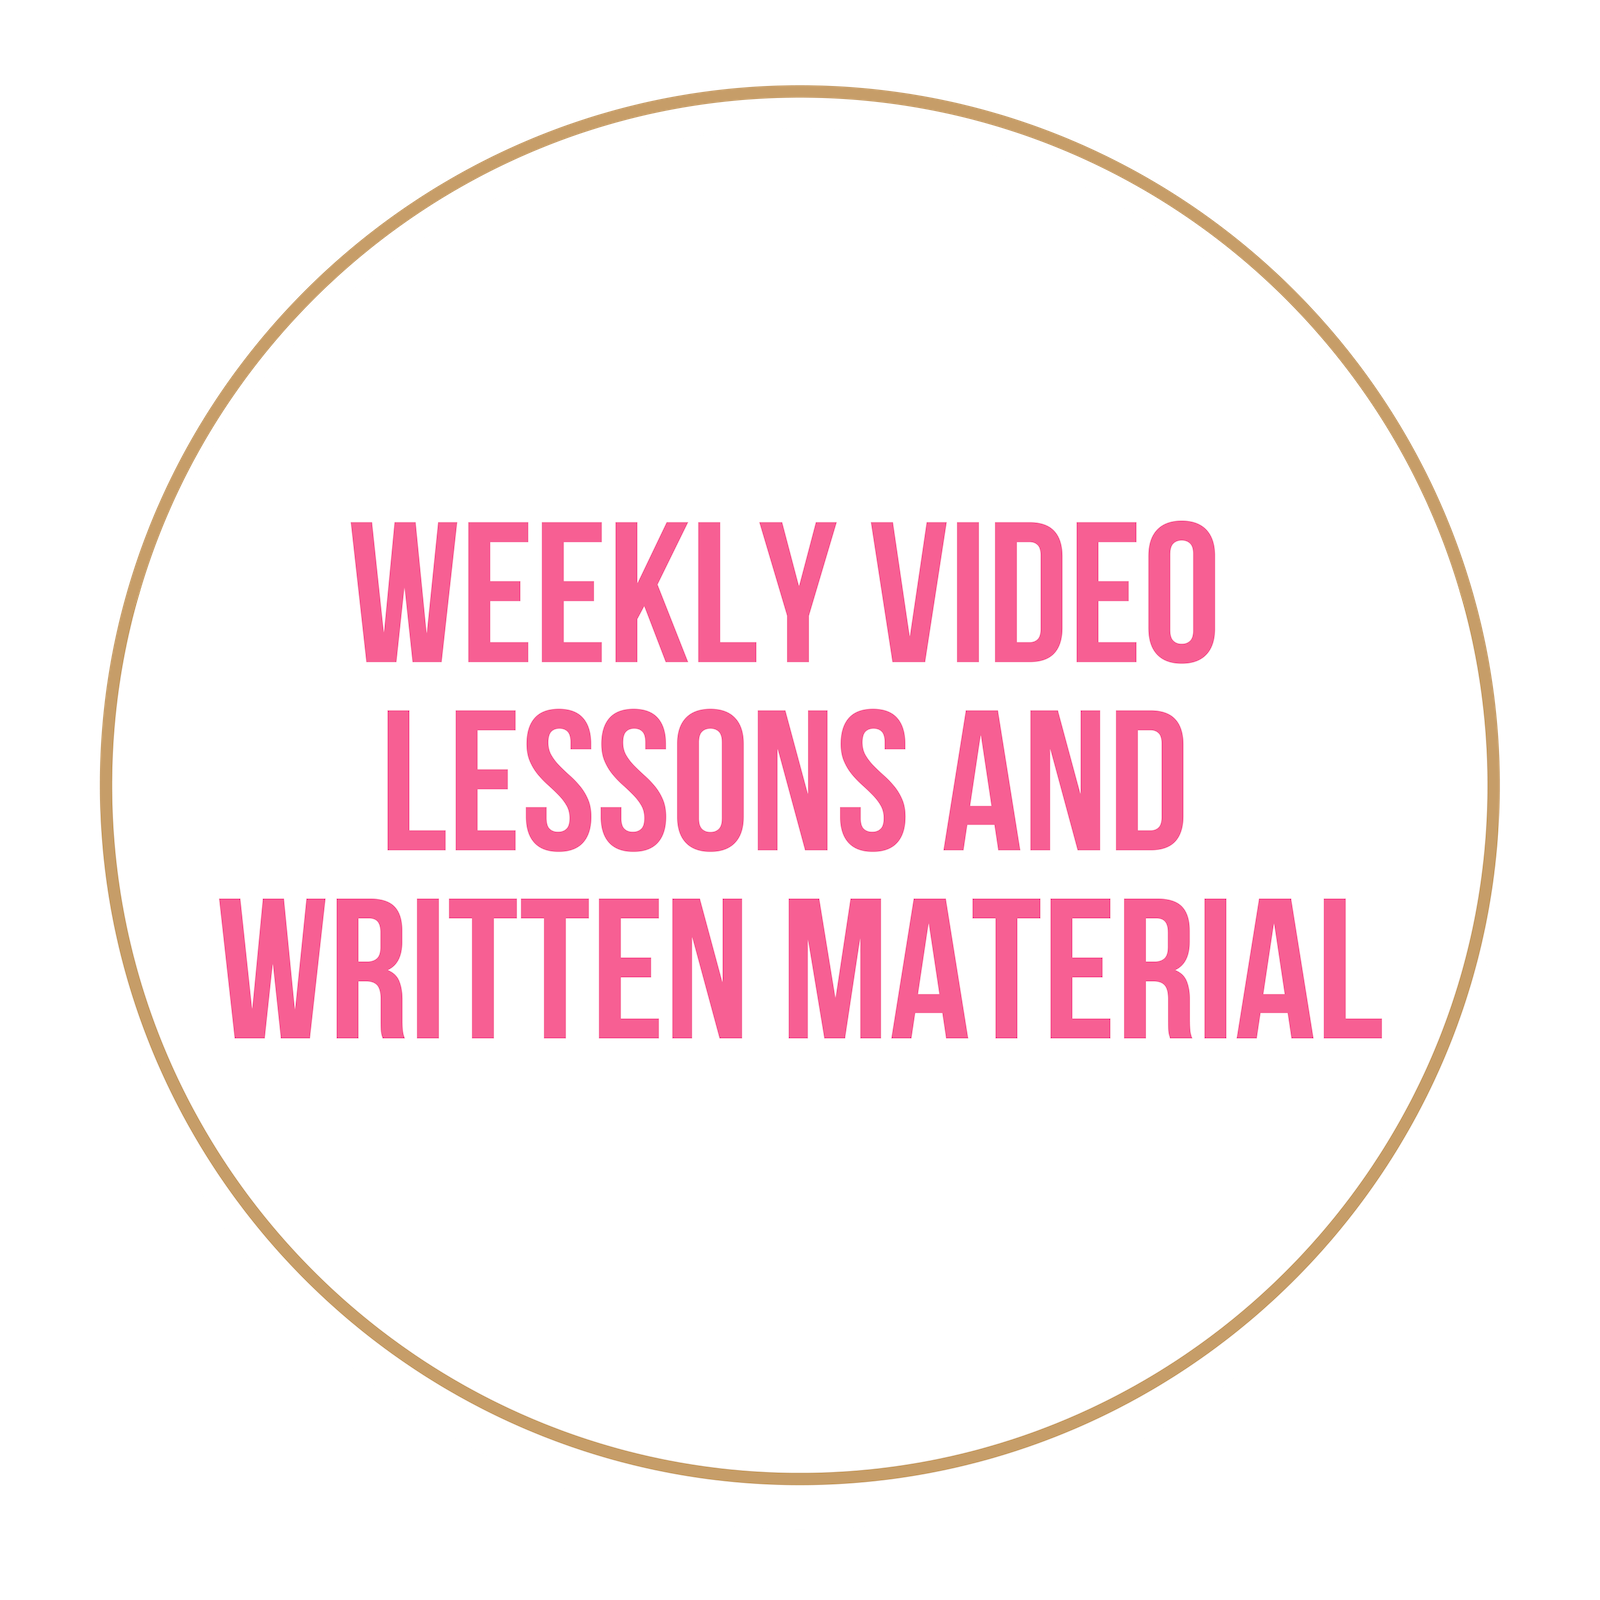 - You will receive weekly video lessons and written material to work through each week. Content will also be accessible after the program is complete, this will give you the opportunity to revisit program material at your own pace.